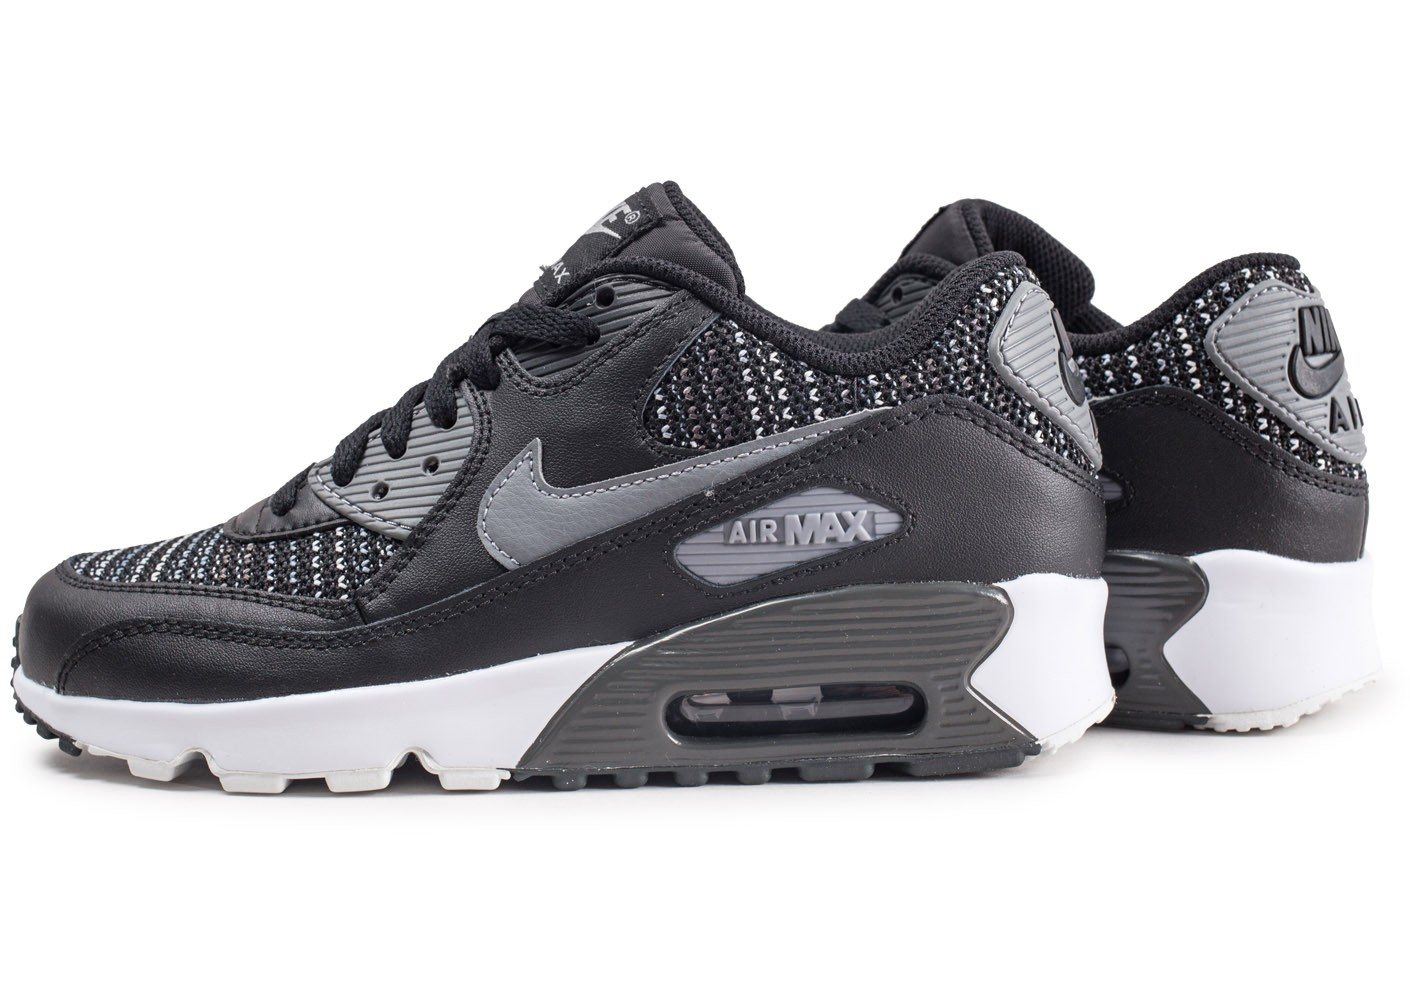 hot product the sale of shoes low price sale Nike Air Max 90 Mesh noir et grise junior - Chaussures Enfant ...